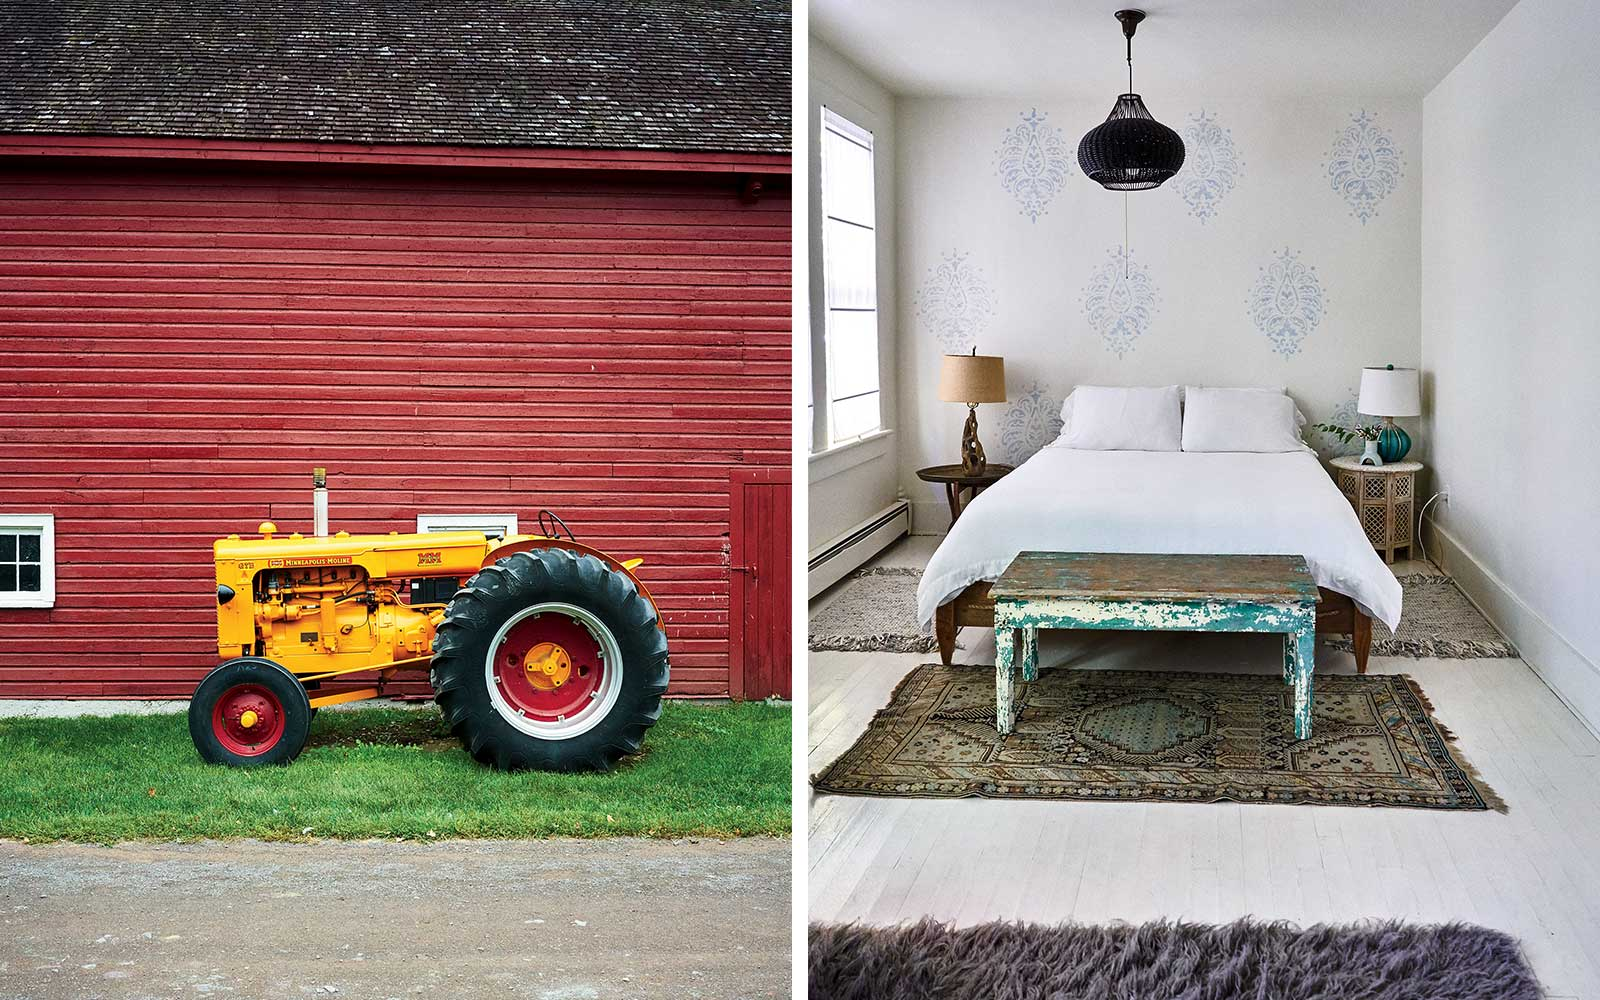 Kinder hook Farm and Foxfire Mountain House, in Upstate New York